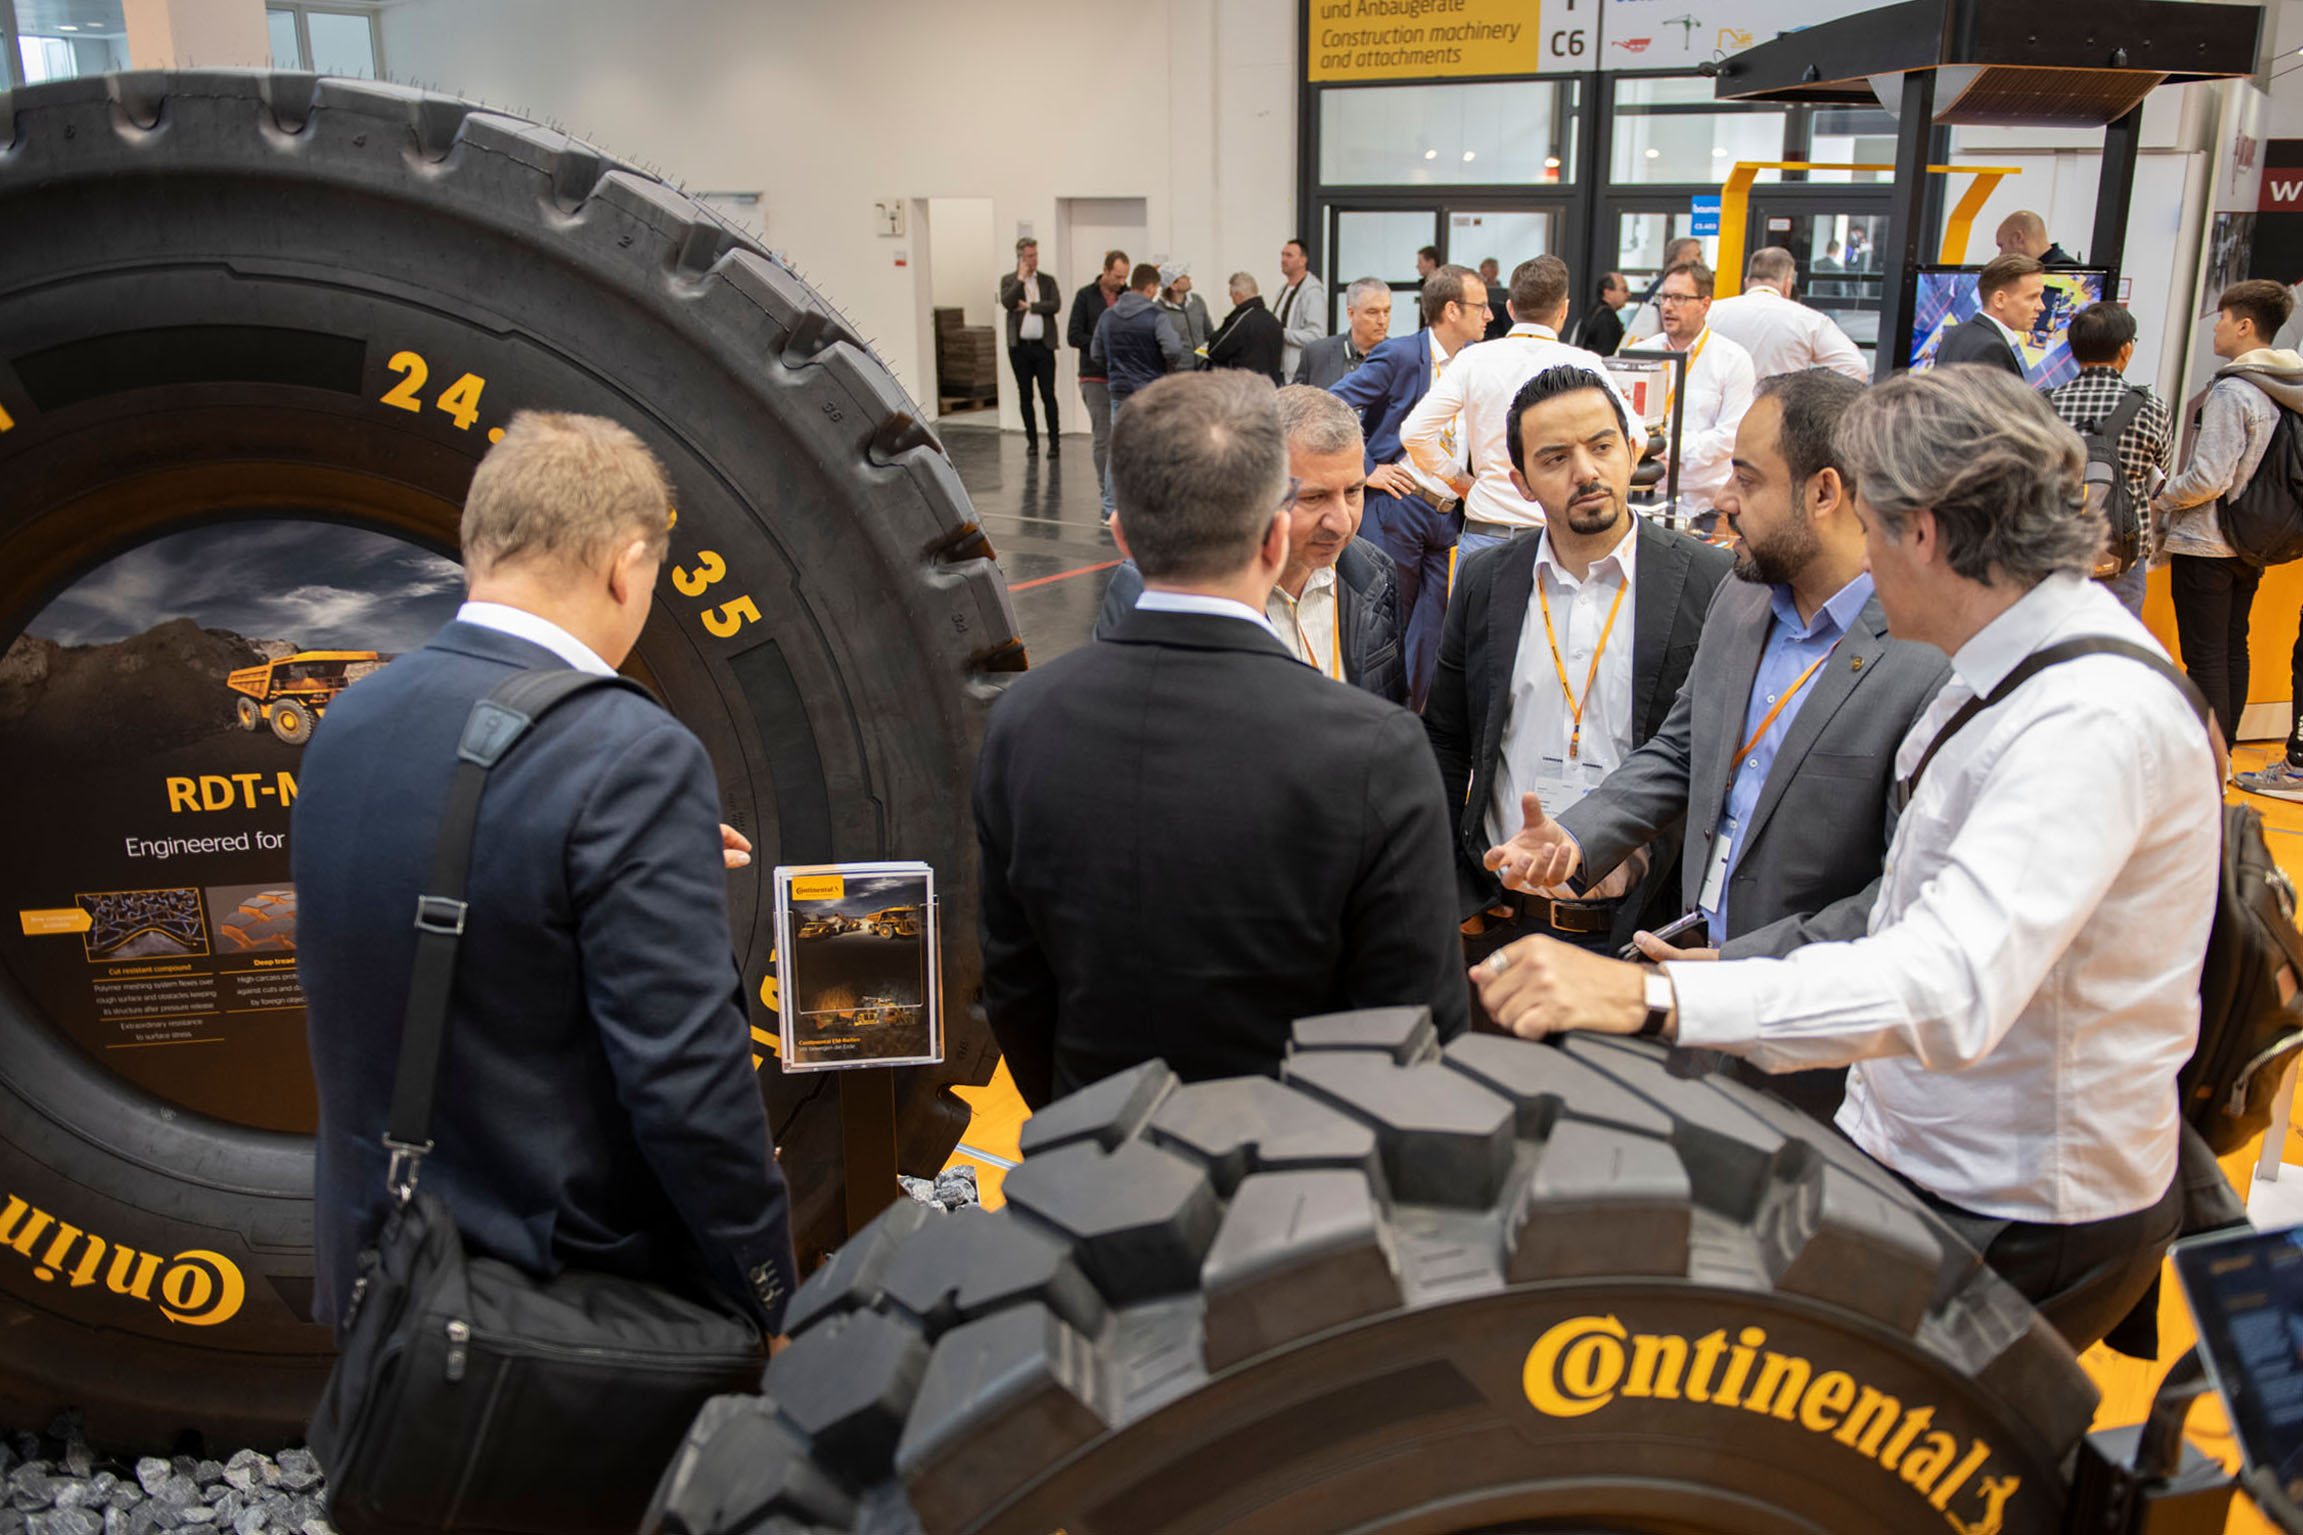 Image+2+-+Continental+at+Bauma+exhibition-1